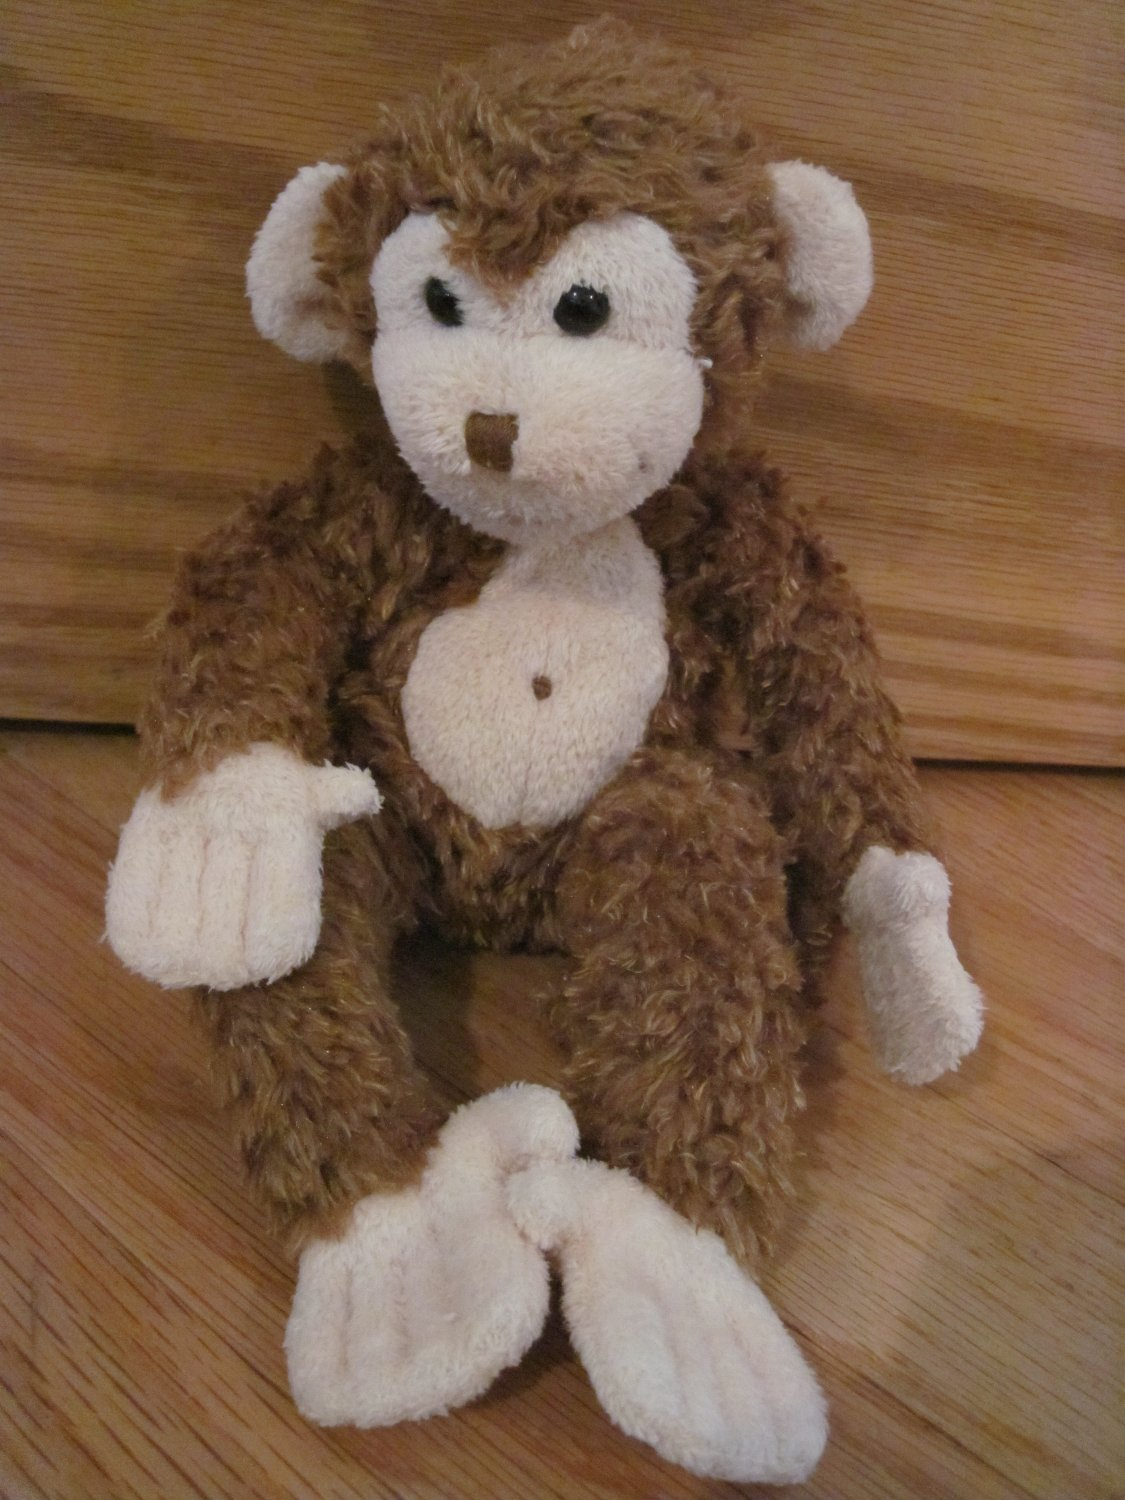 Douglas Toys Plush 9 Inch Brown Monkey Cream Face Belly Button Mo Bongo